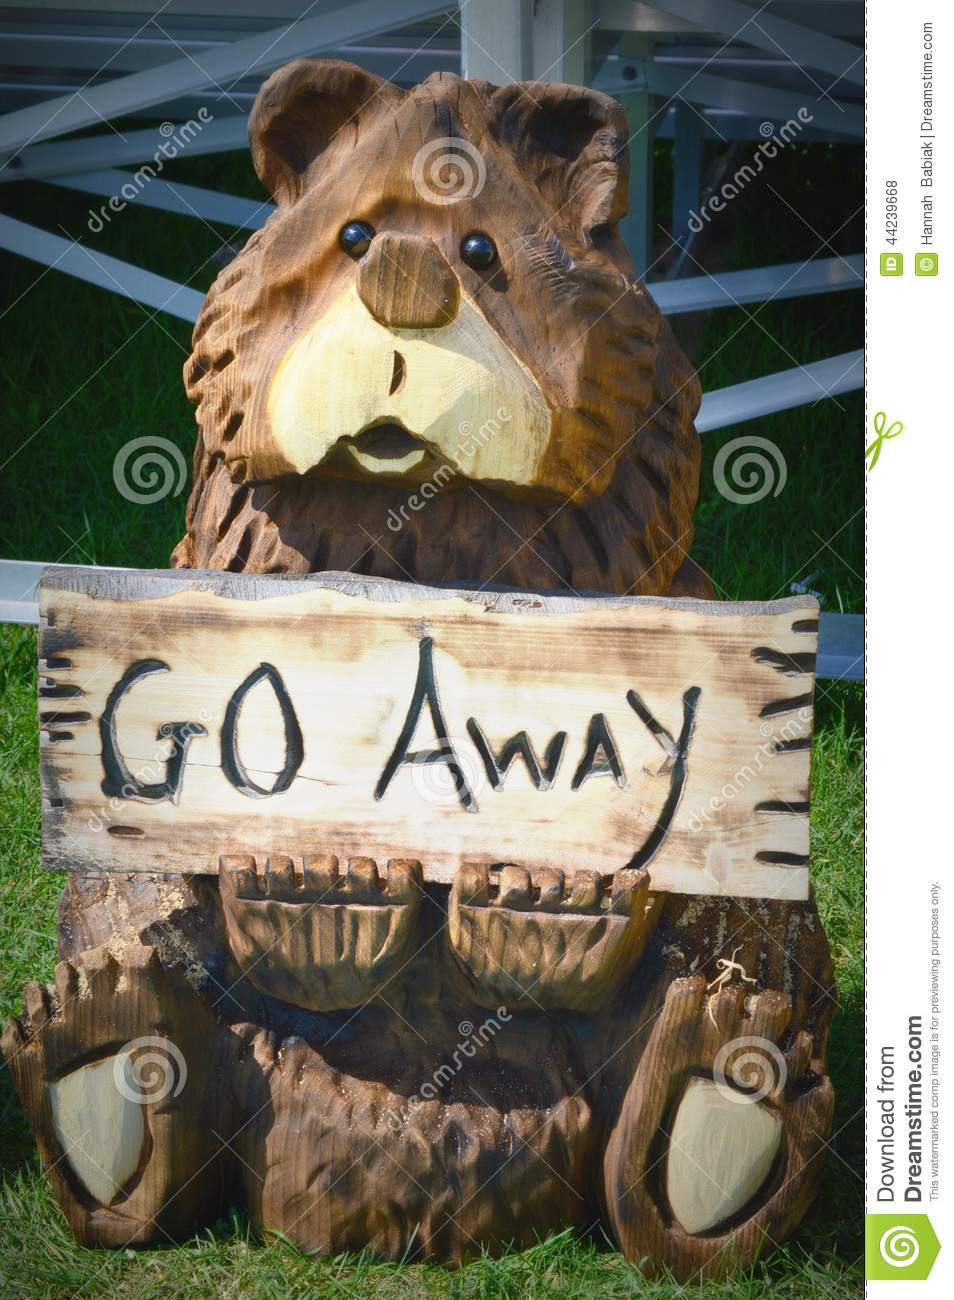 Go Away Wooden Carved Bear Chainsaw Art Stock Photo Image Of